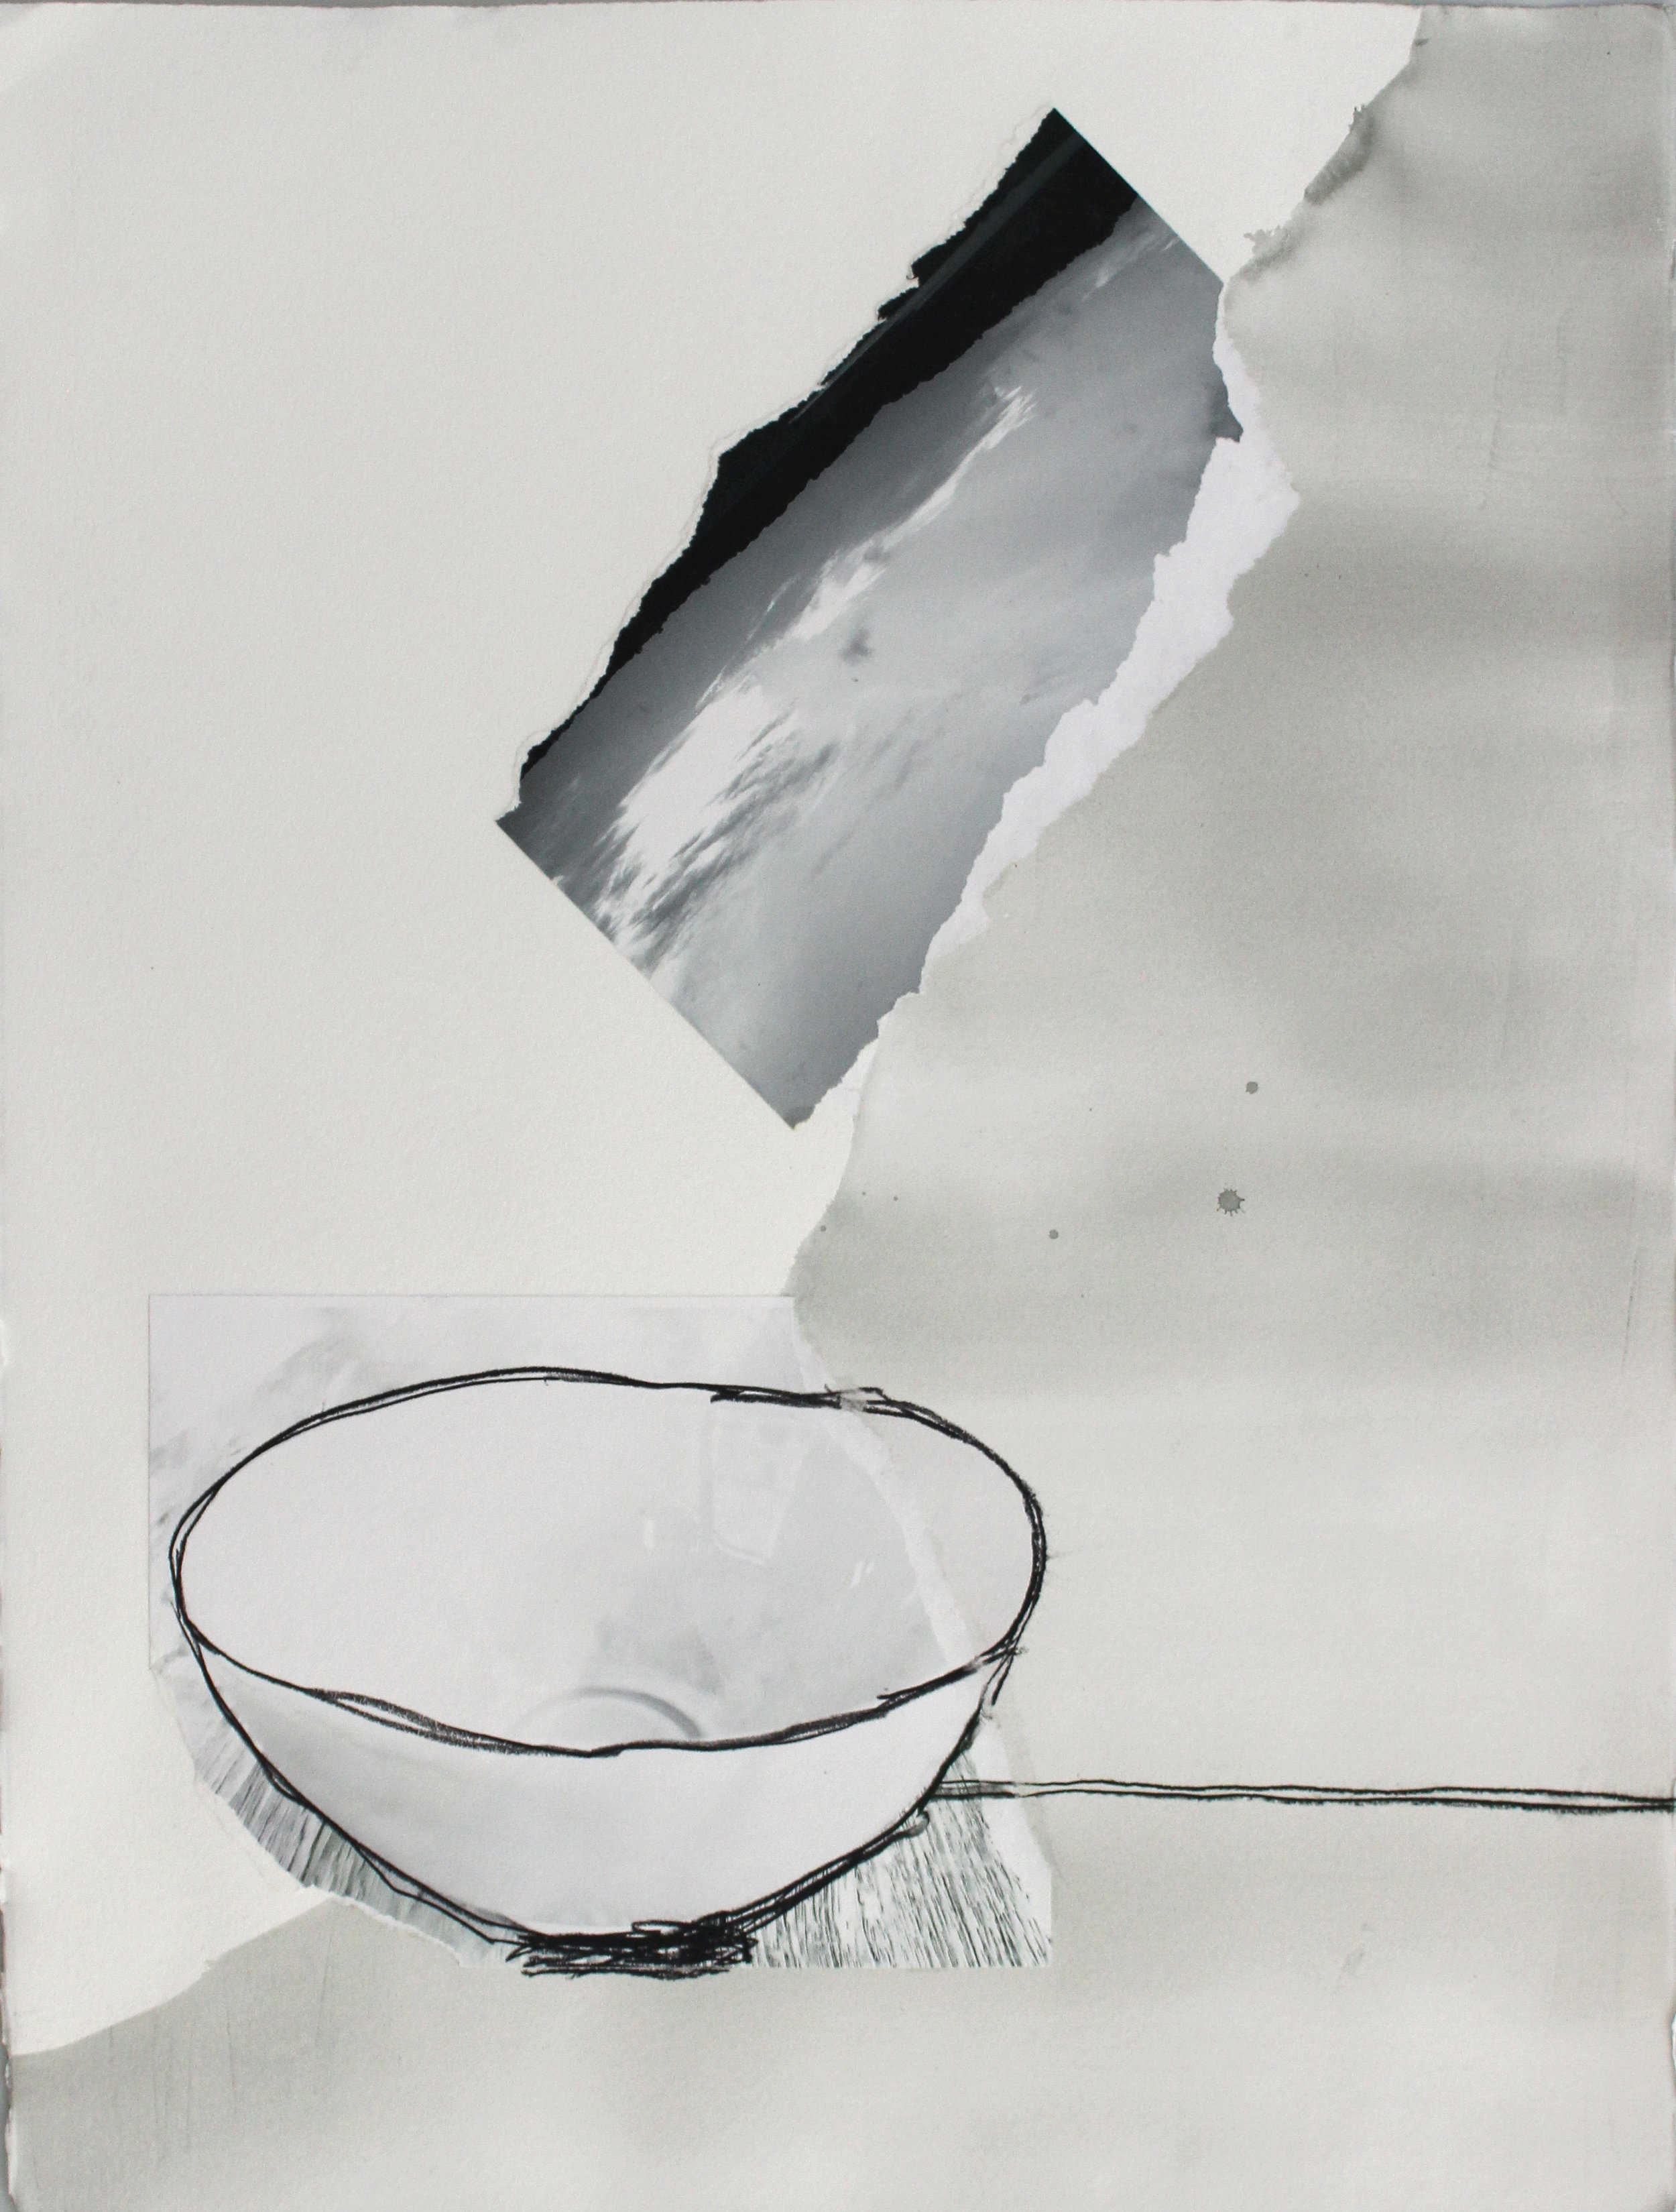 Finding Peace in an Empty Bowl, 2016, archival photographic prints, ink, graphite, 30 x 22 in (framed), $2,300